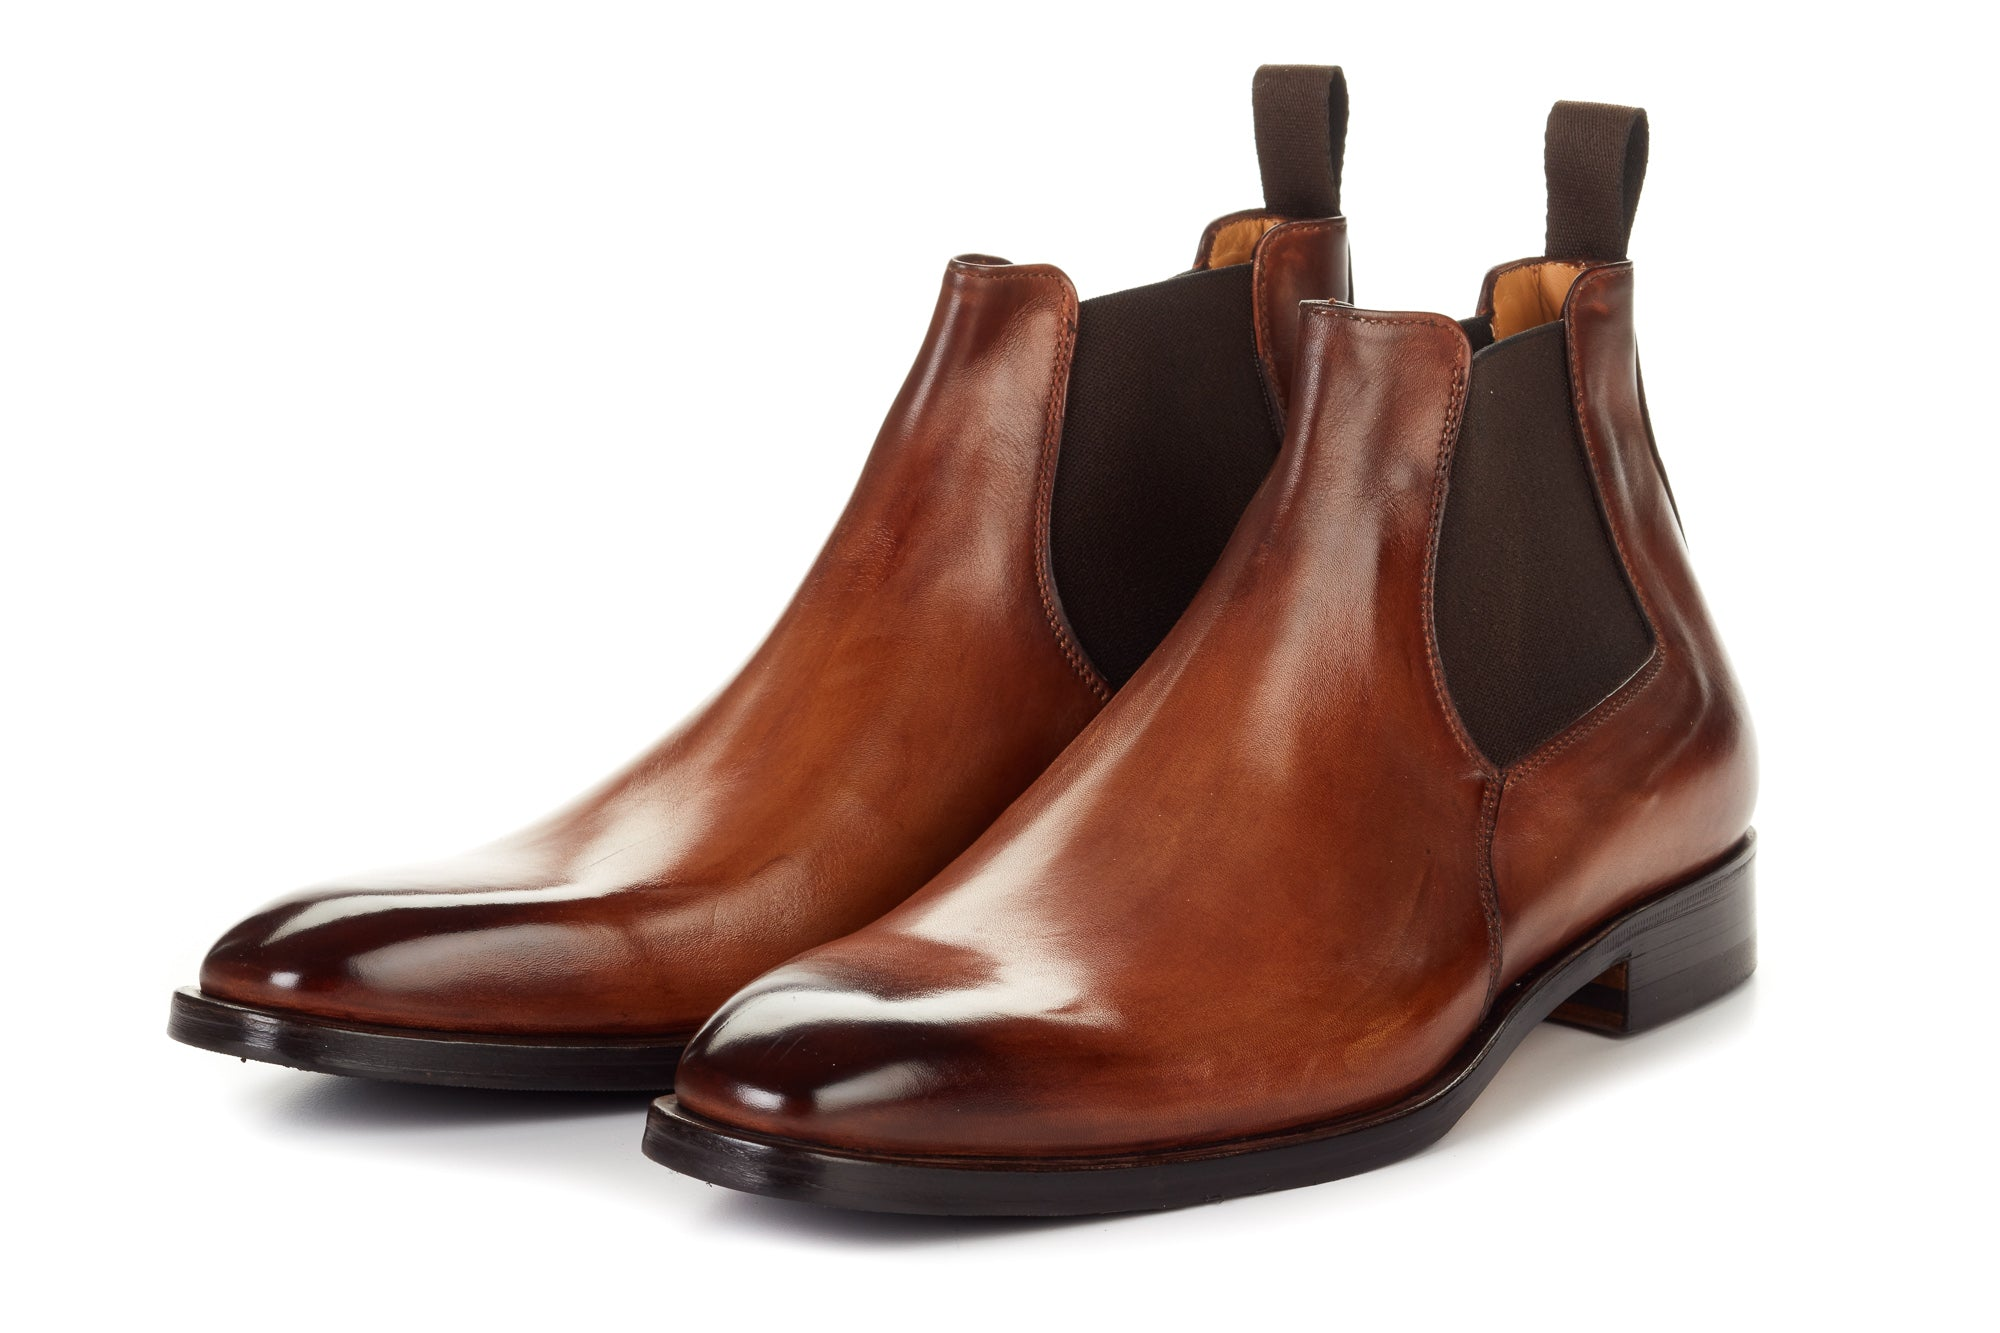 Paul Evans Handmade Italian Leather Men's Dress Shoes - Low-Cut Chelsea Boot - Cacao